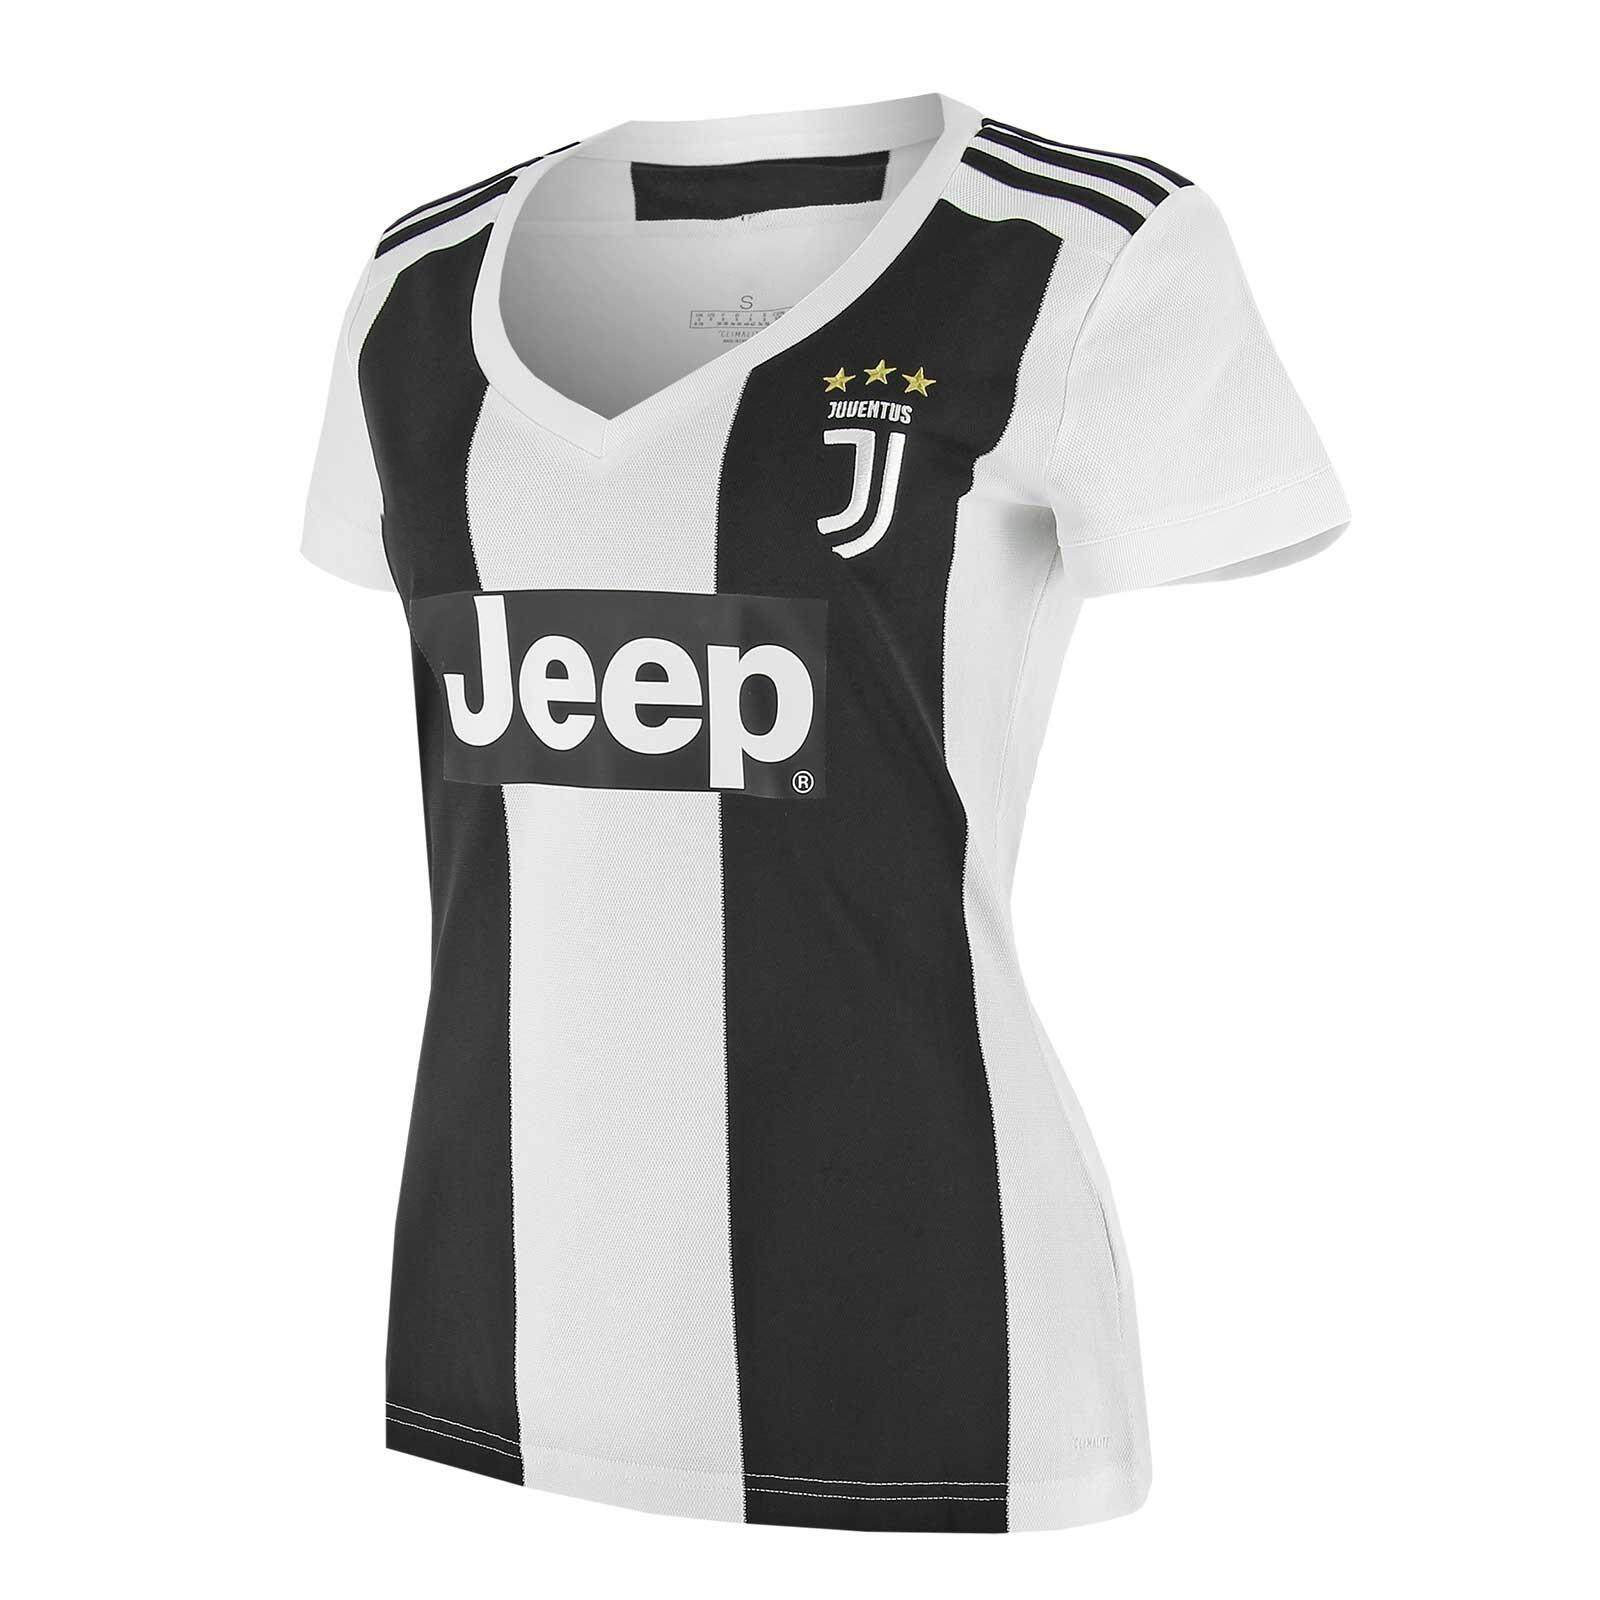 reputable site c4b46 90886 High quality Woman Juventus 2018-2019 Home Football Jersey